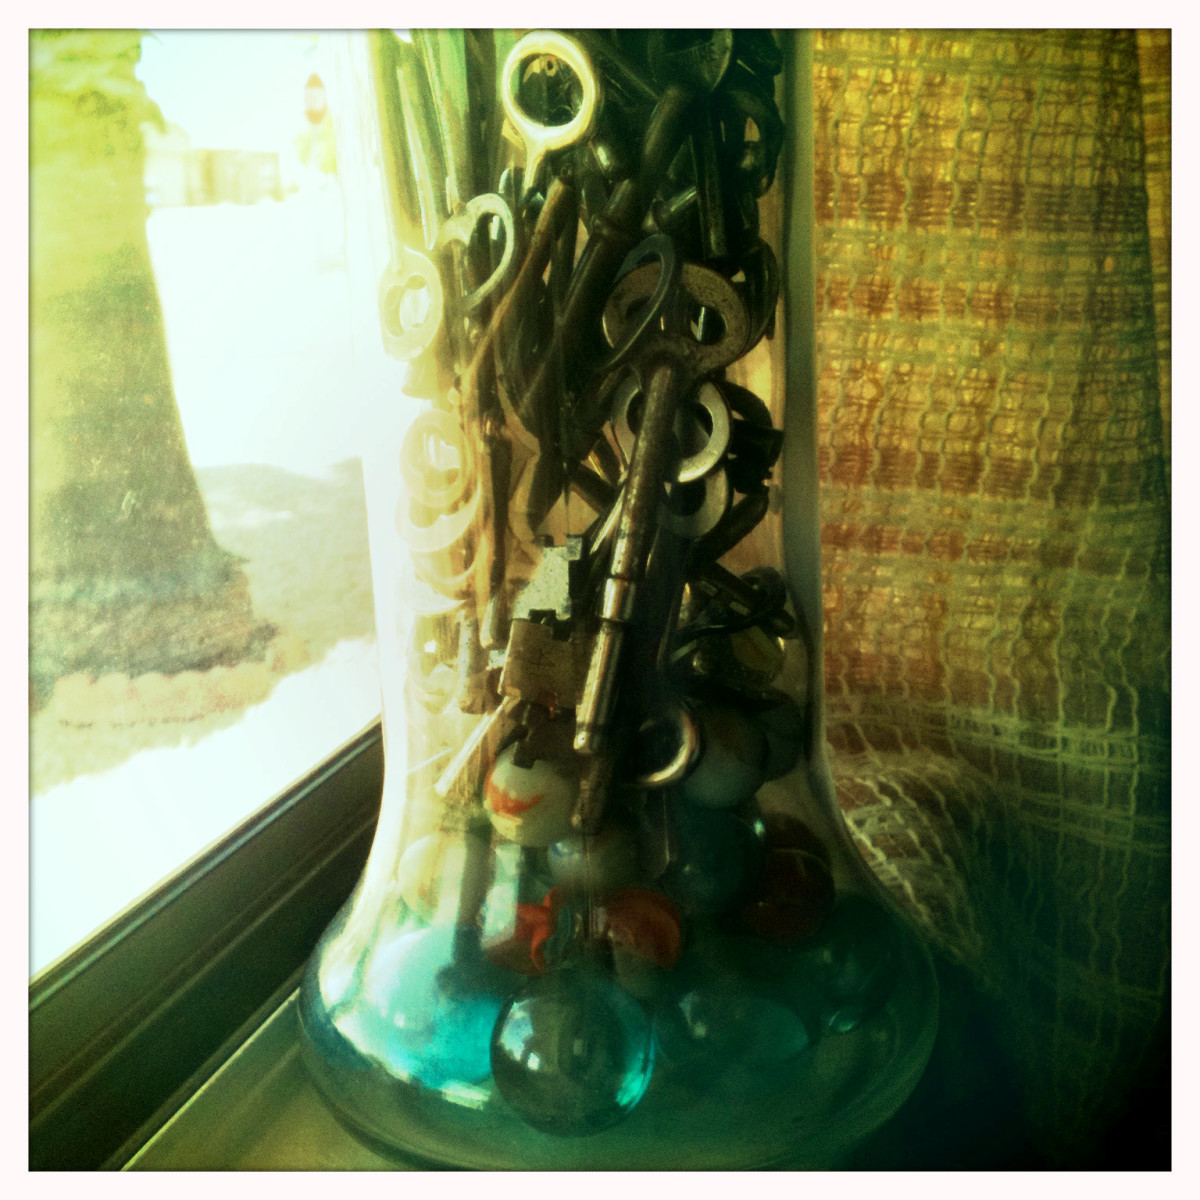 Fill a jar or vase with your beautiful keys!